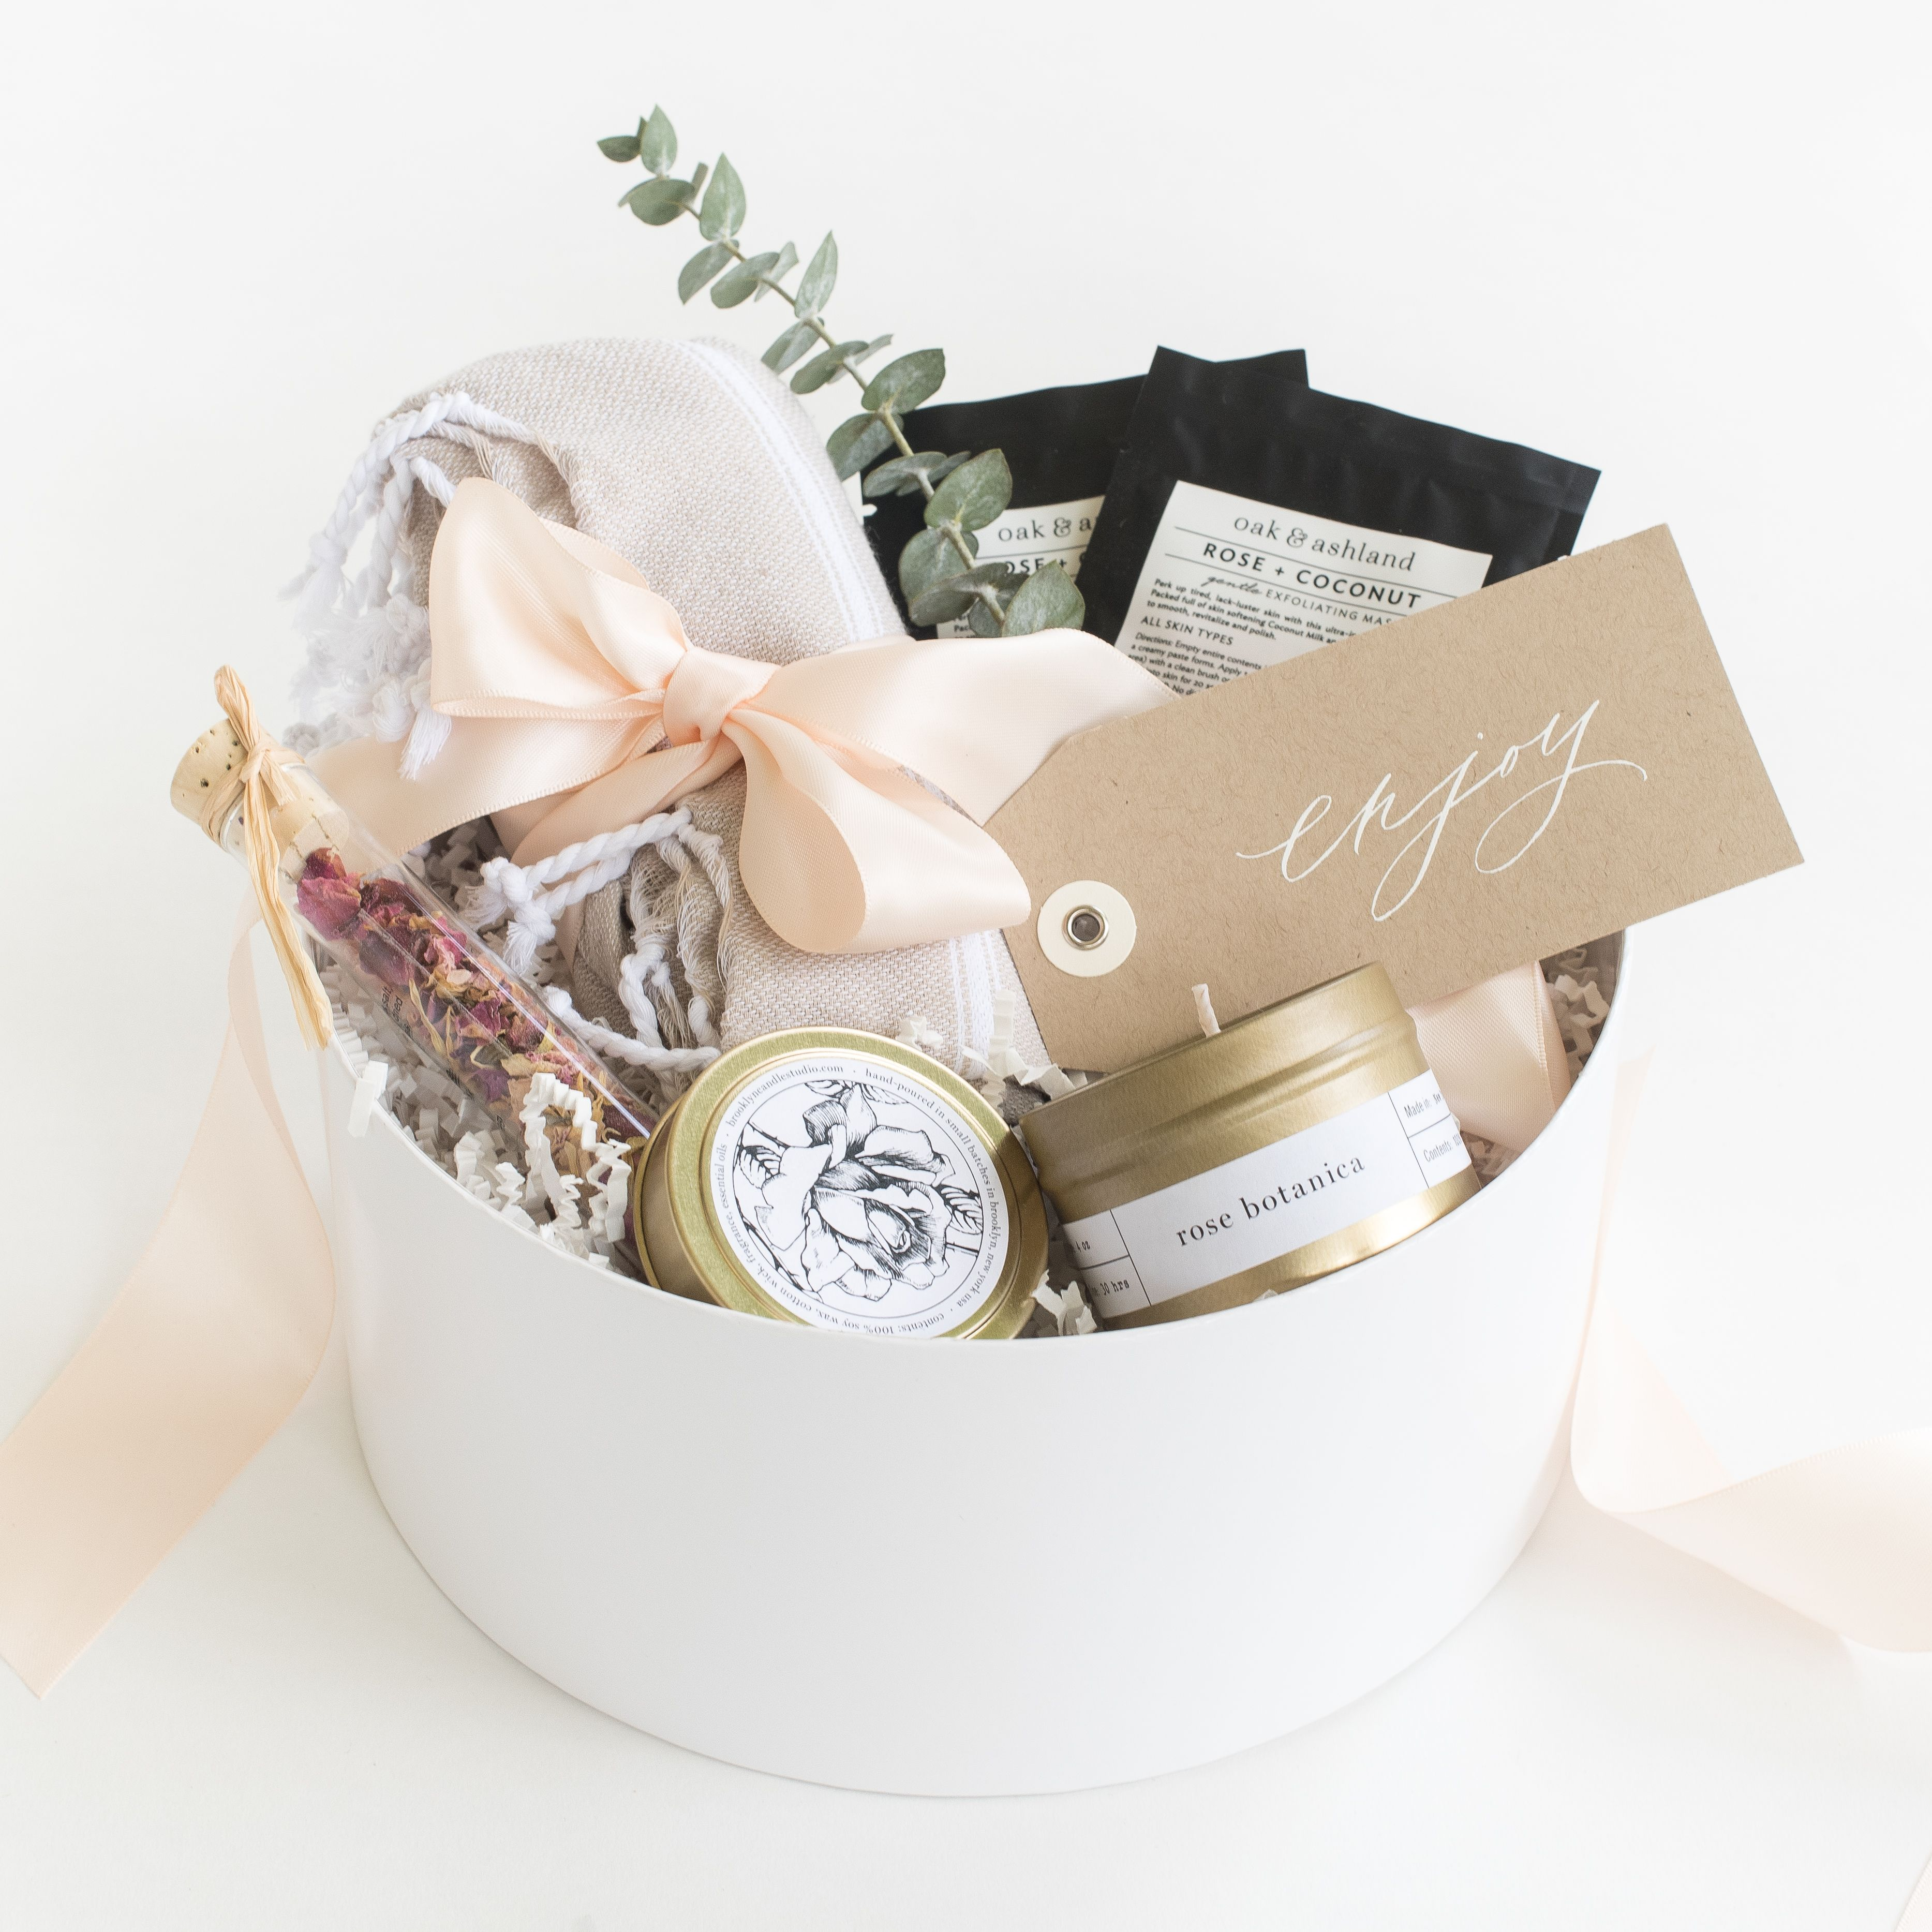 Spring Inspired Curated Gift Box Ideas Pinterest Box